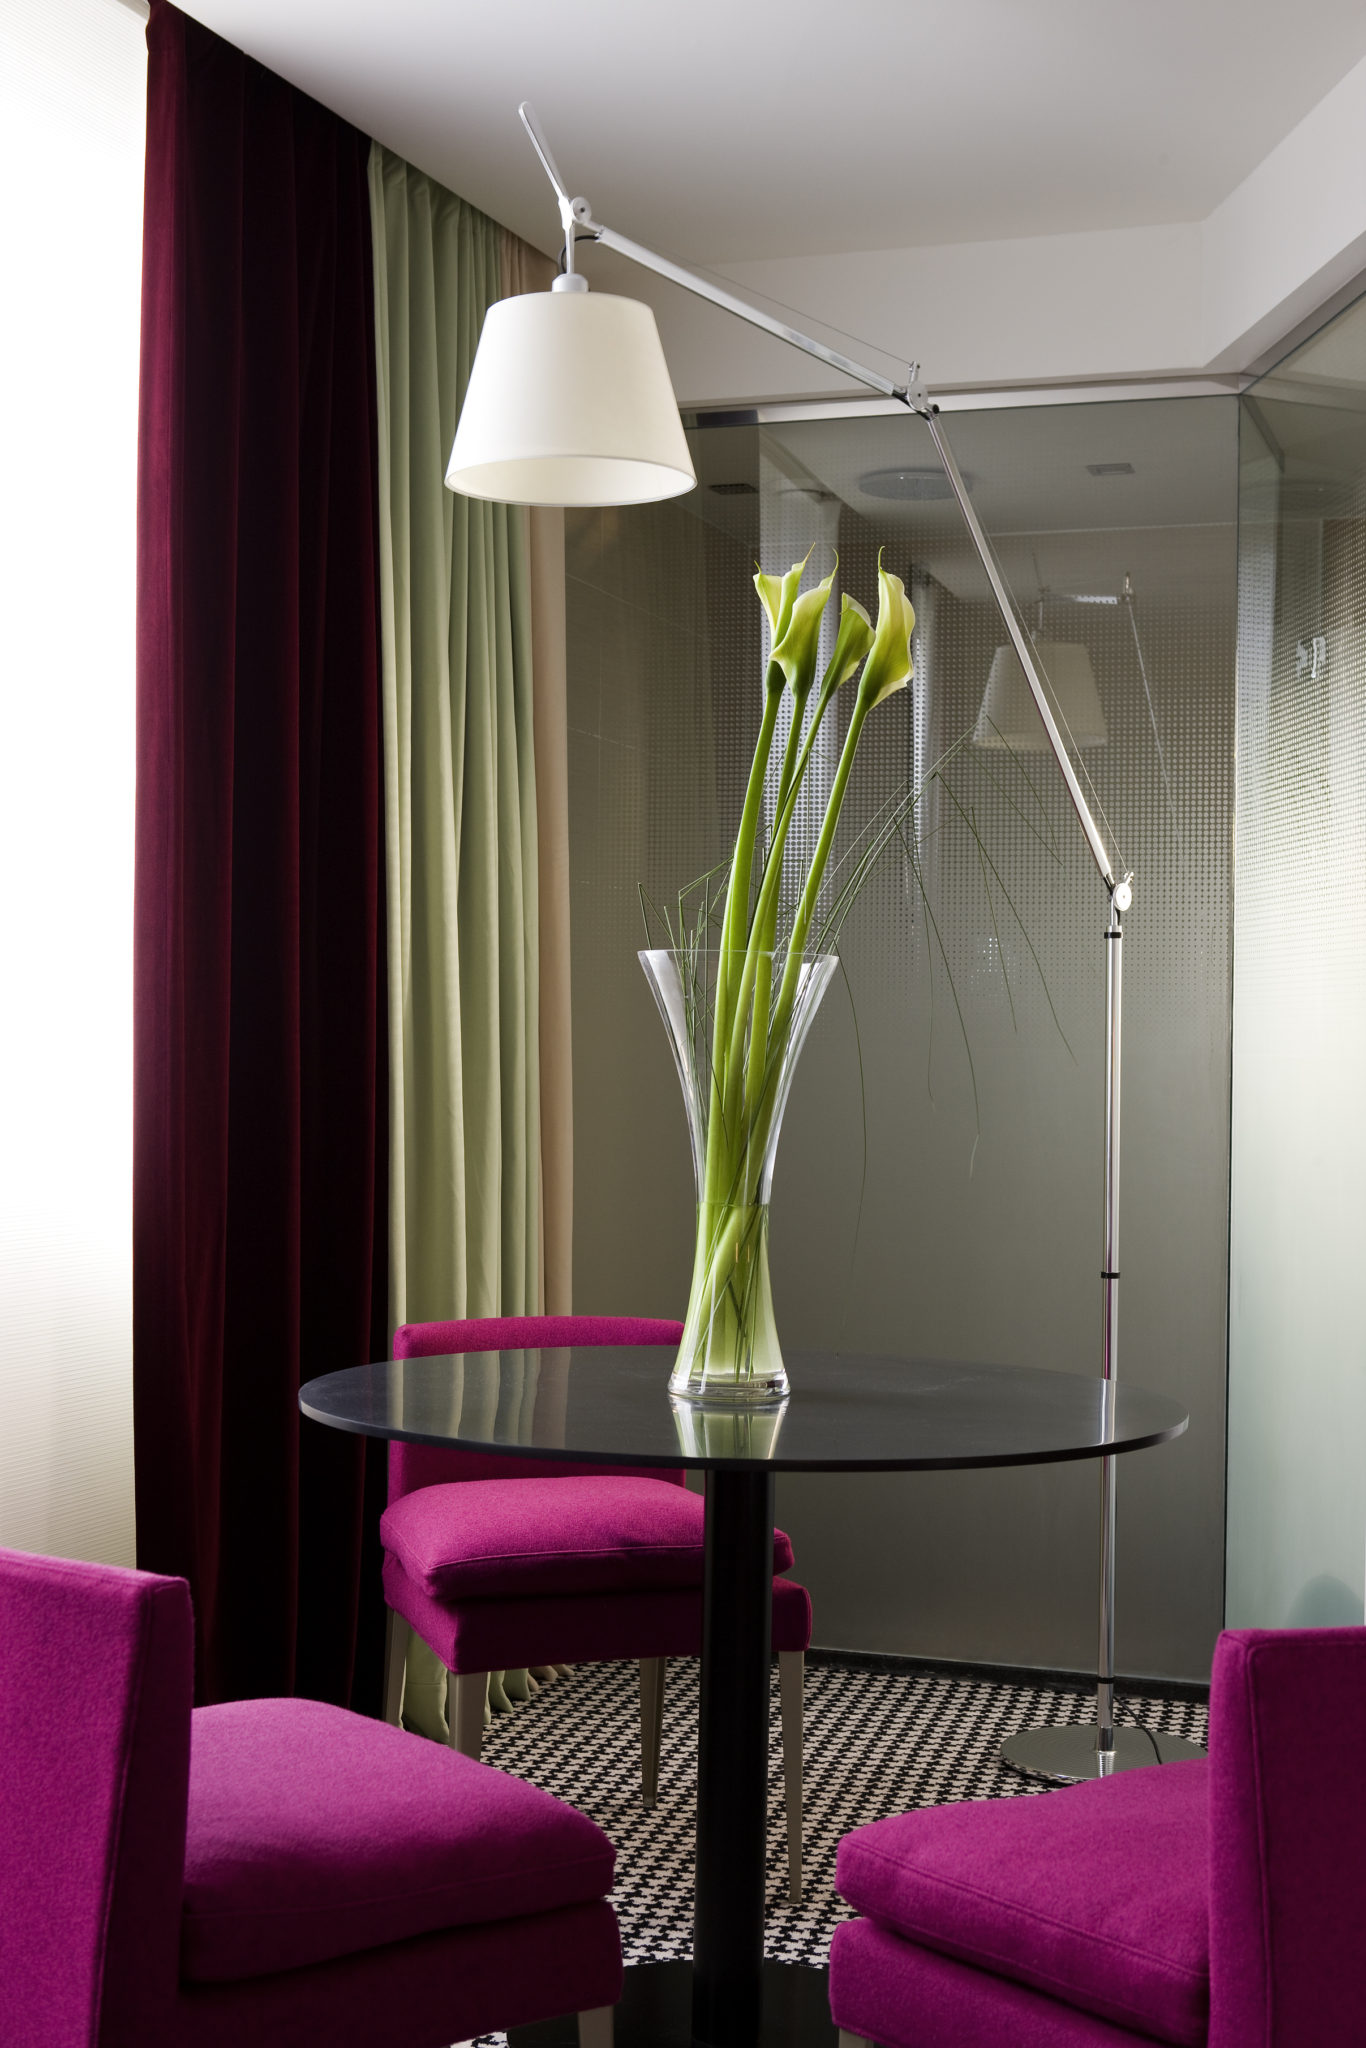 SOFITEL Le GRAND DUCAL Luxembourg - 2590